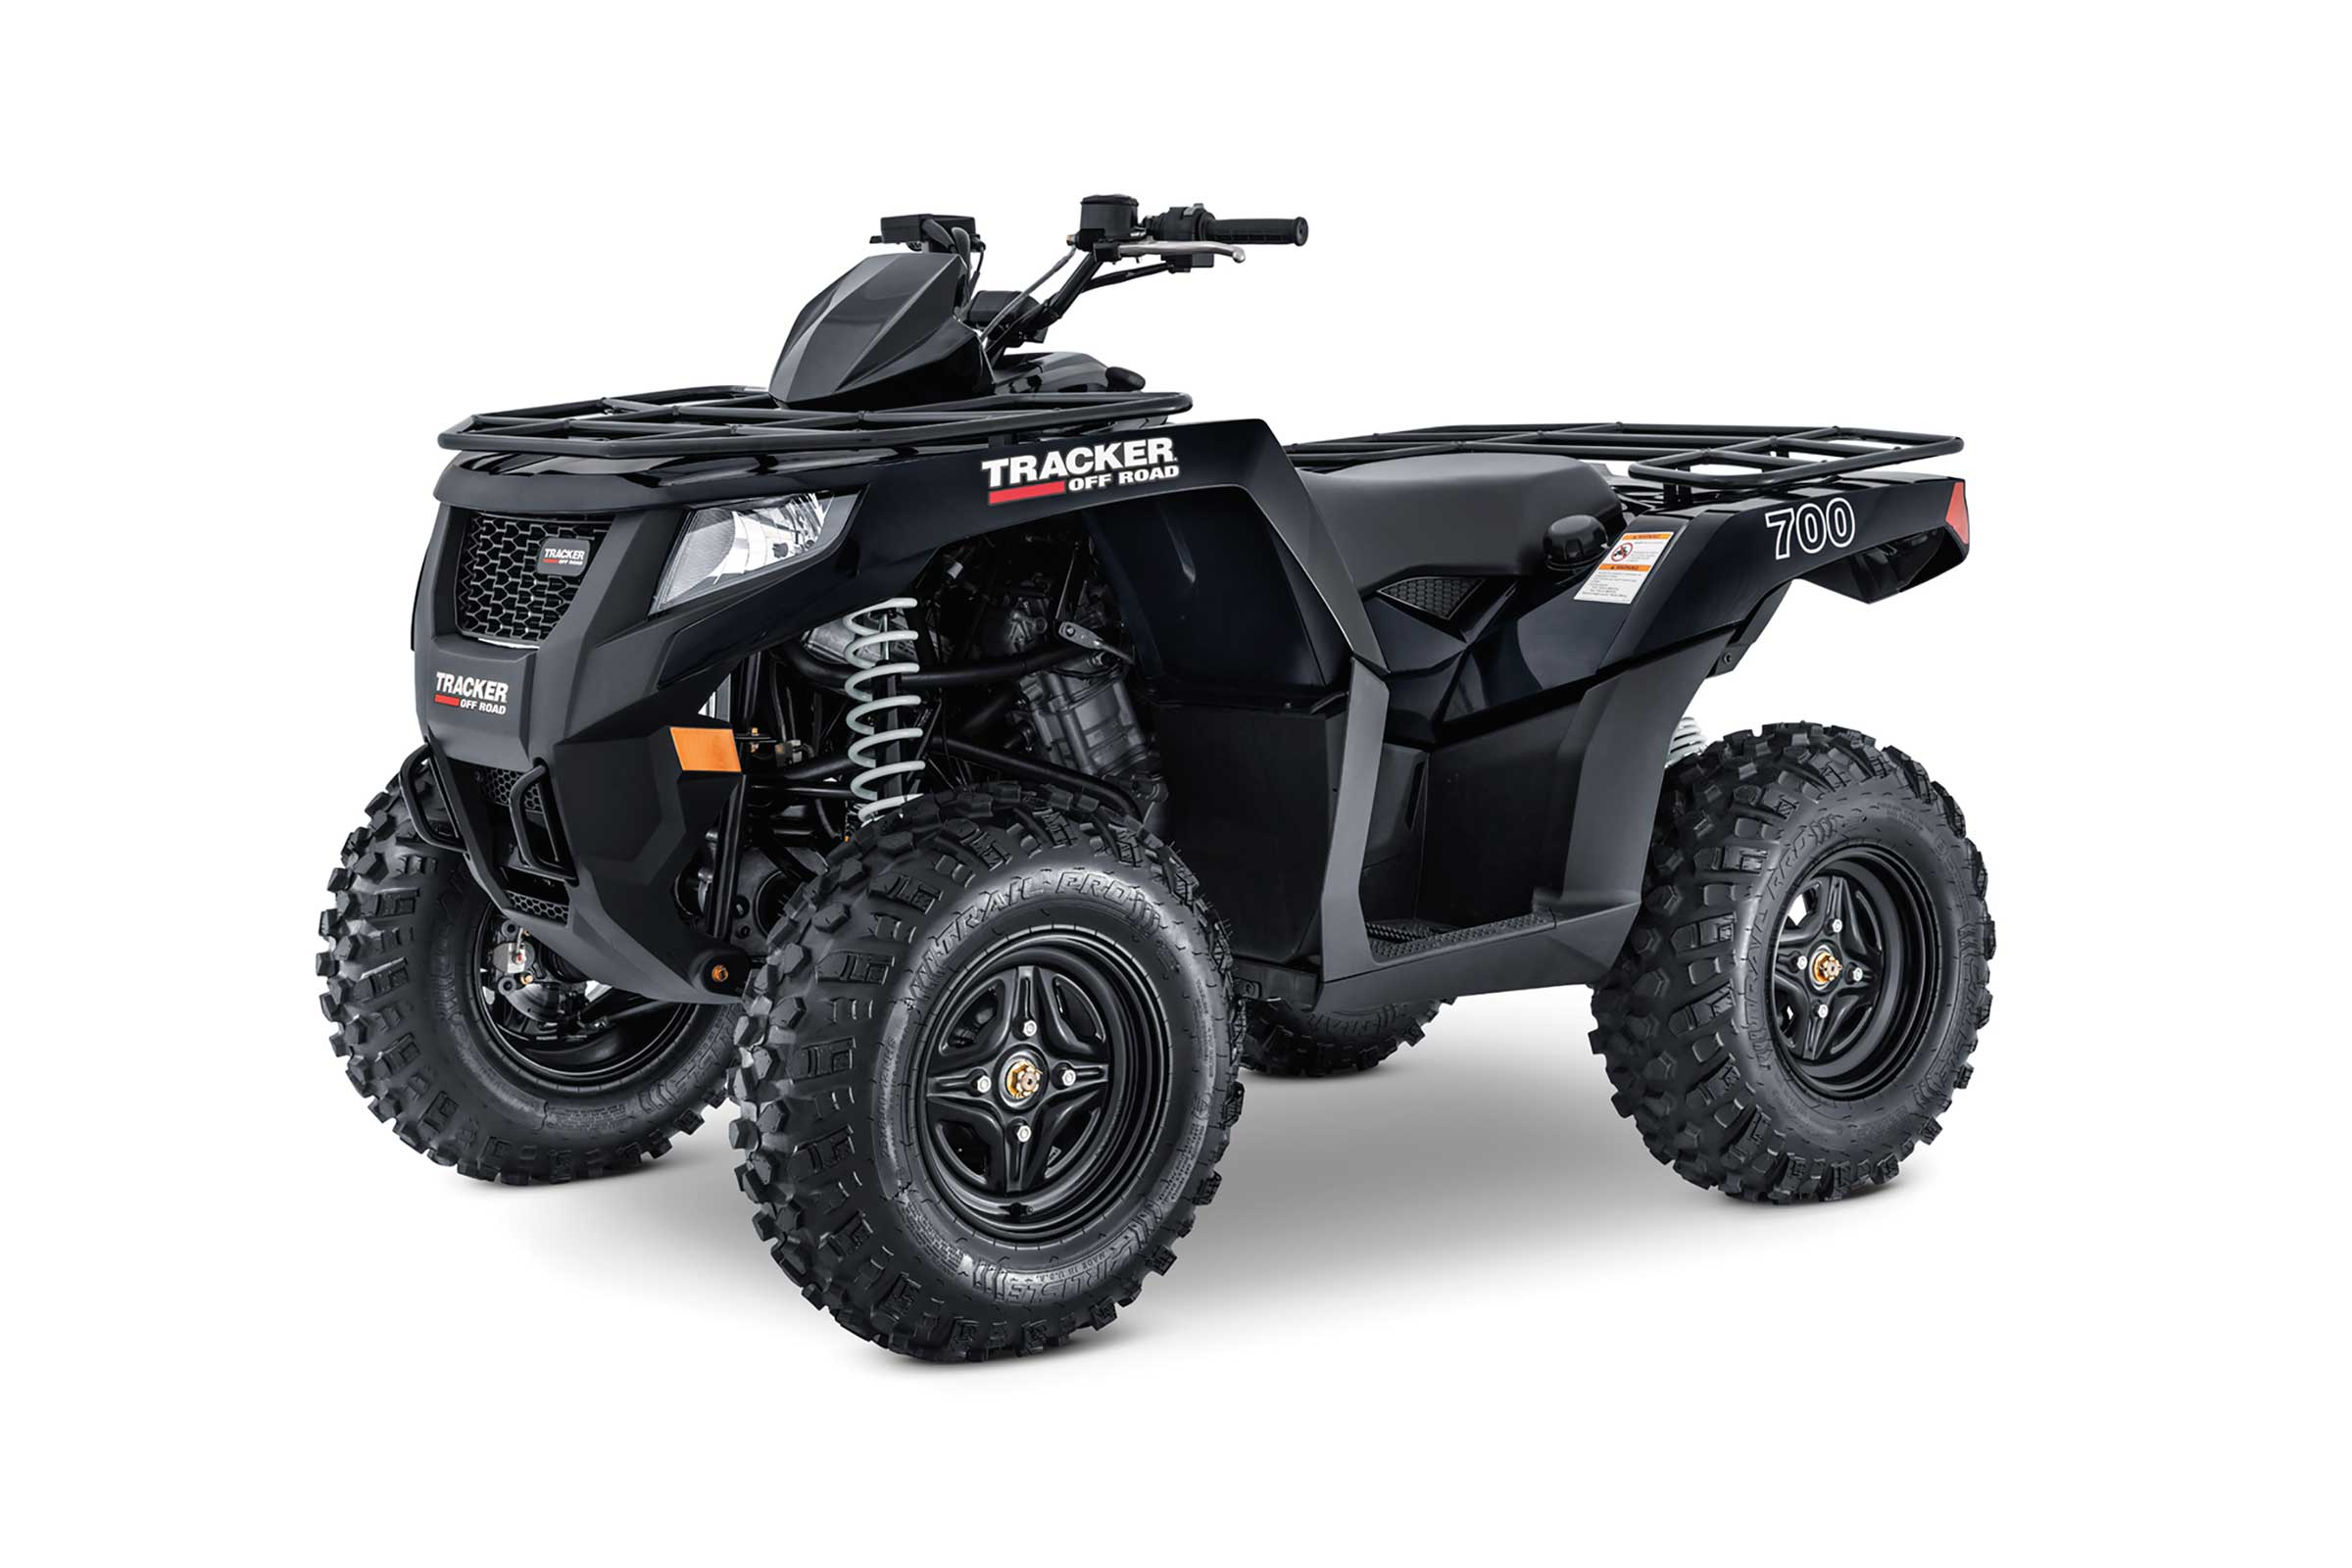 Tracker Off road ATVs